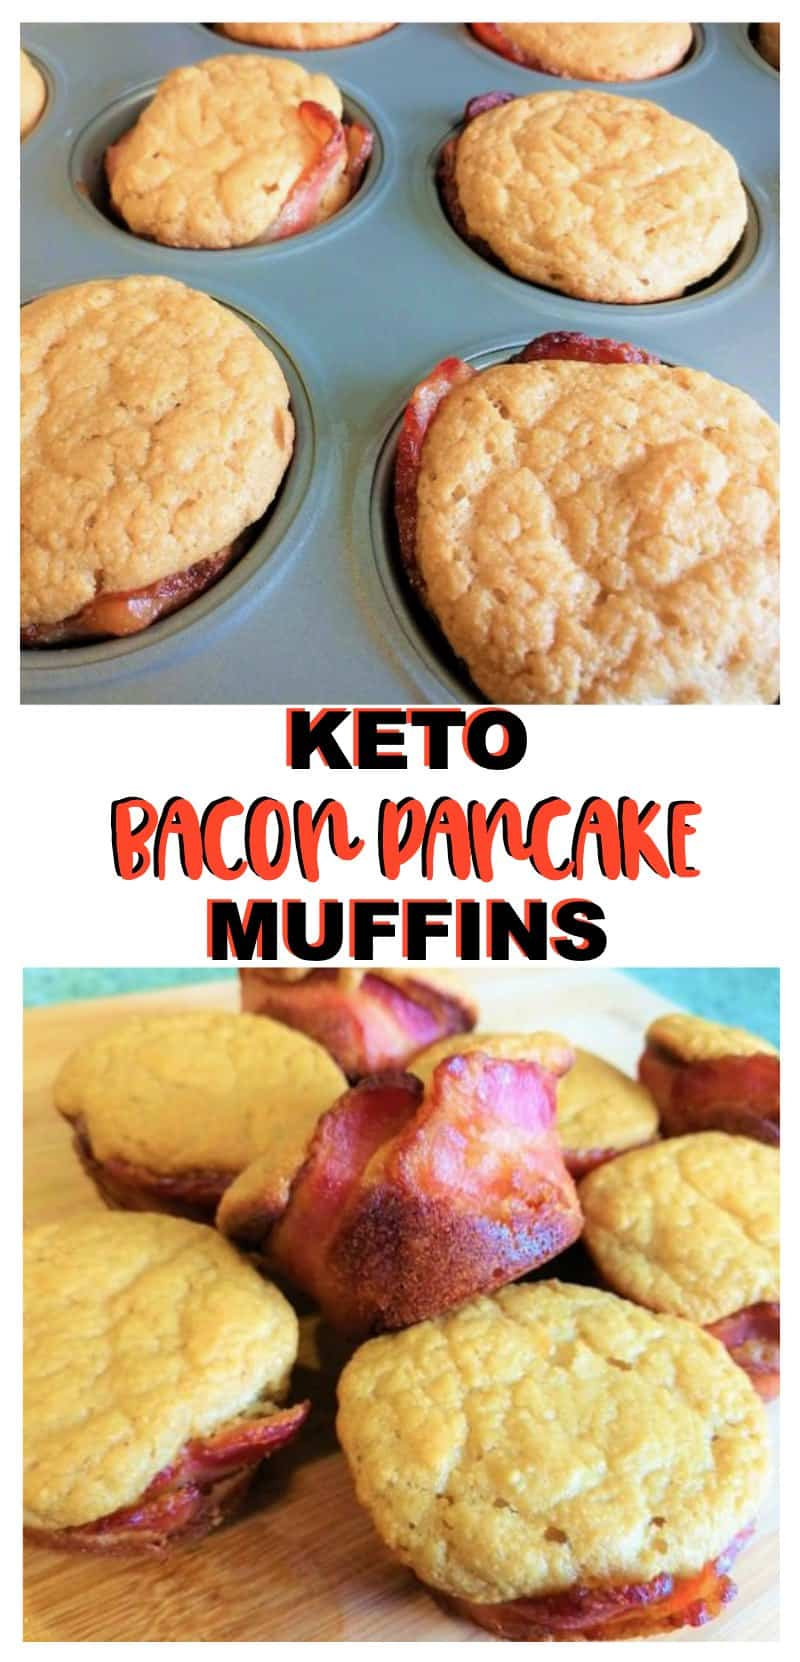 KETO Bacon Pancake Muffins Recipe